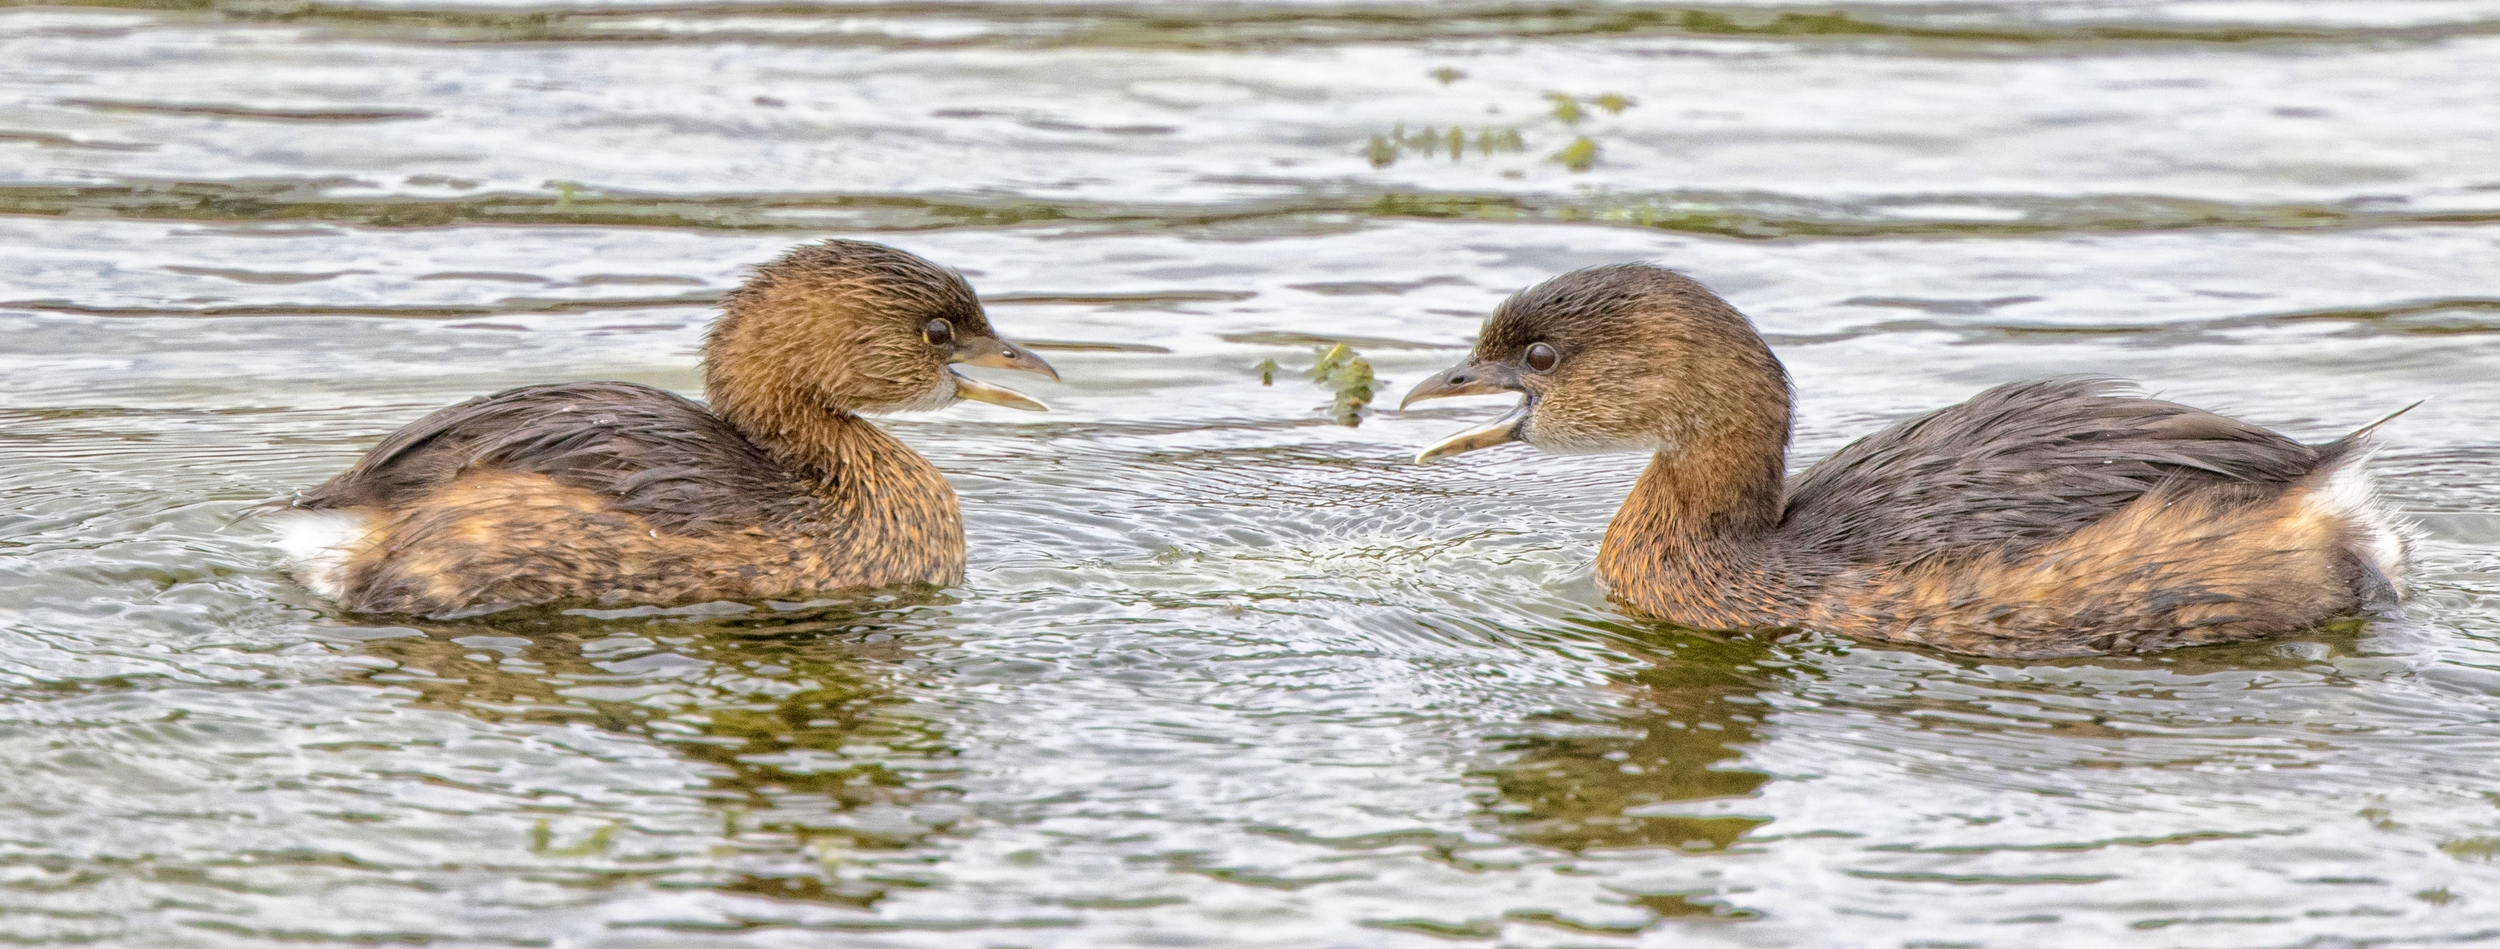 Mating Pair of Pied-billed Grebes having a little discussion..(click on photo to enlarge for full effect)